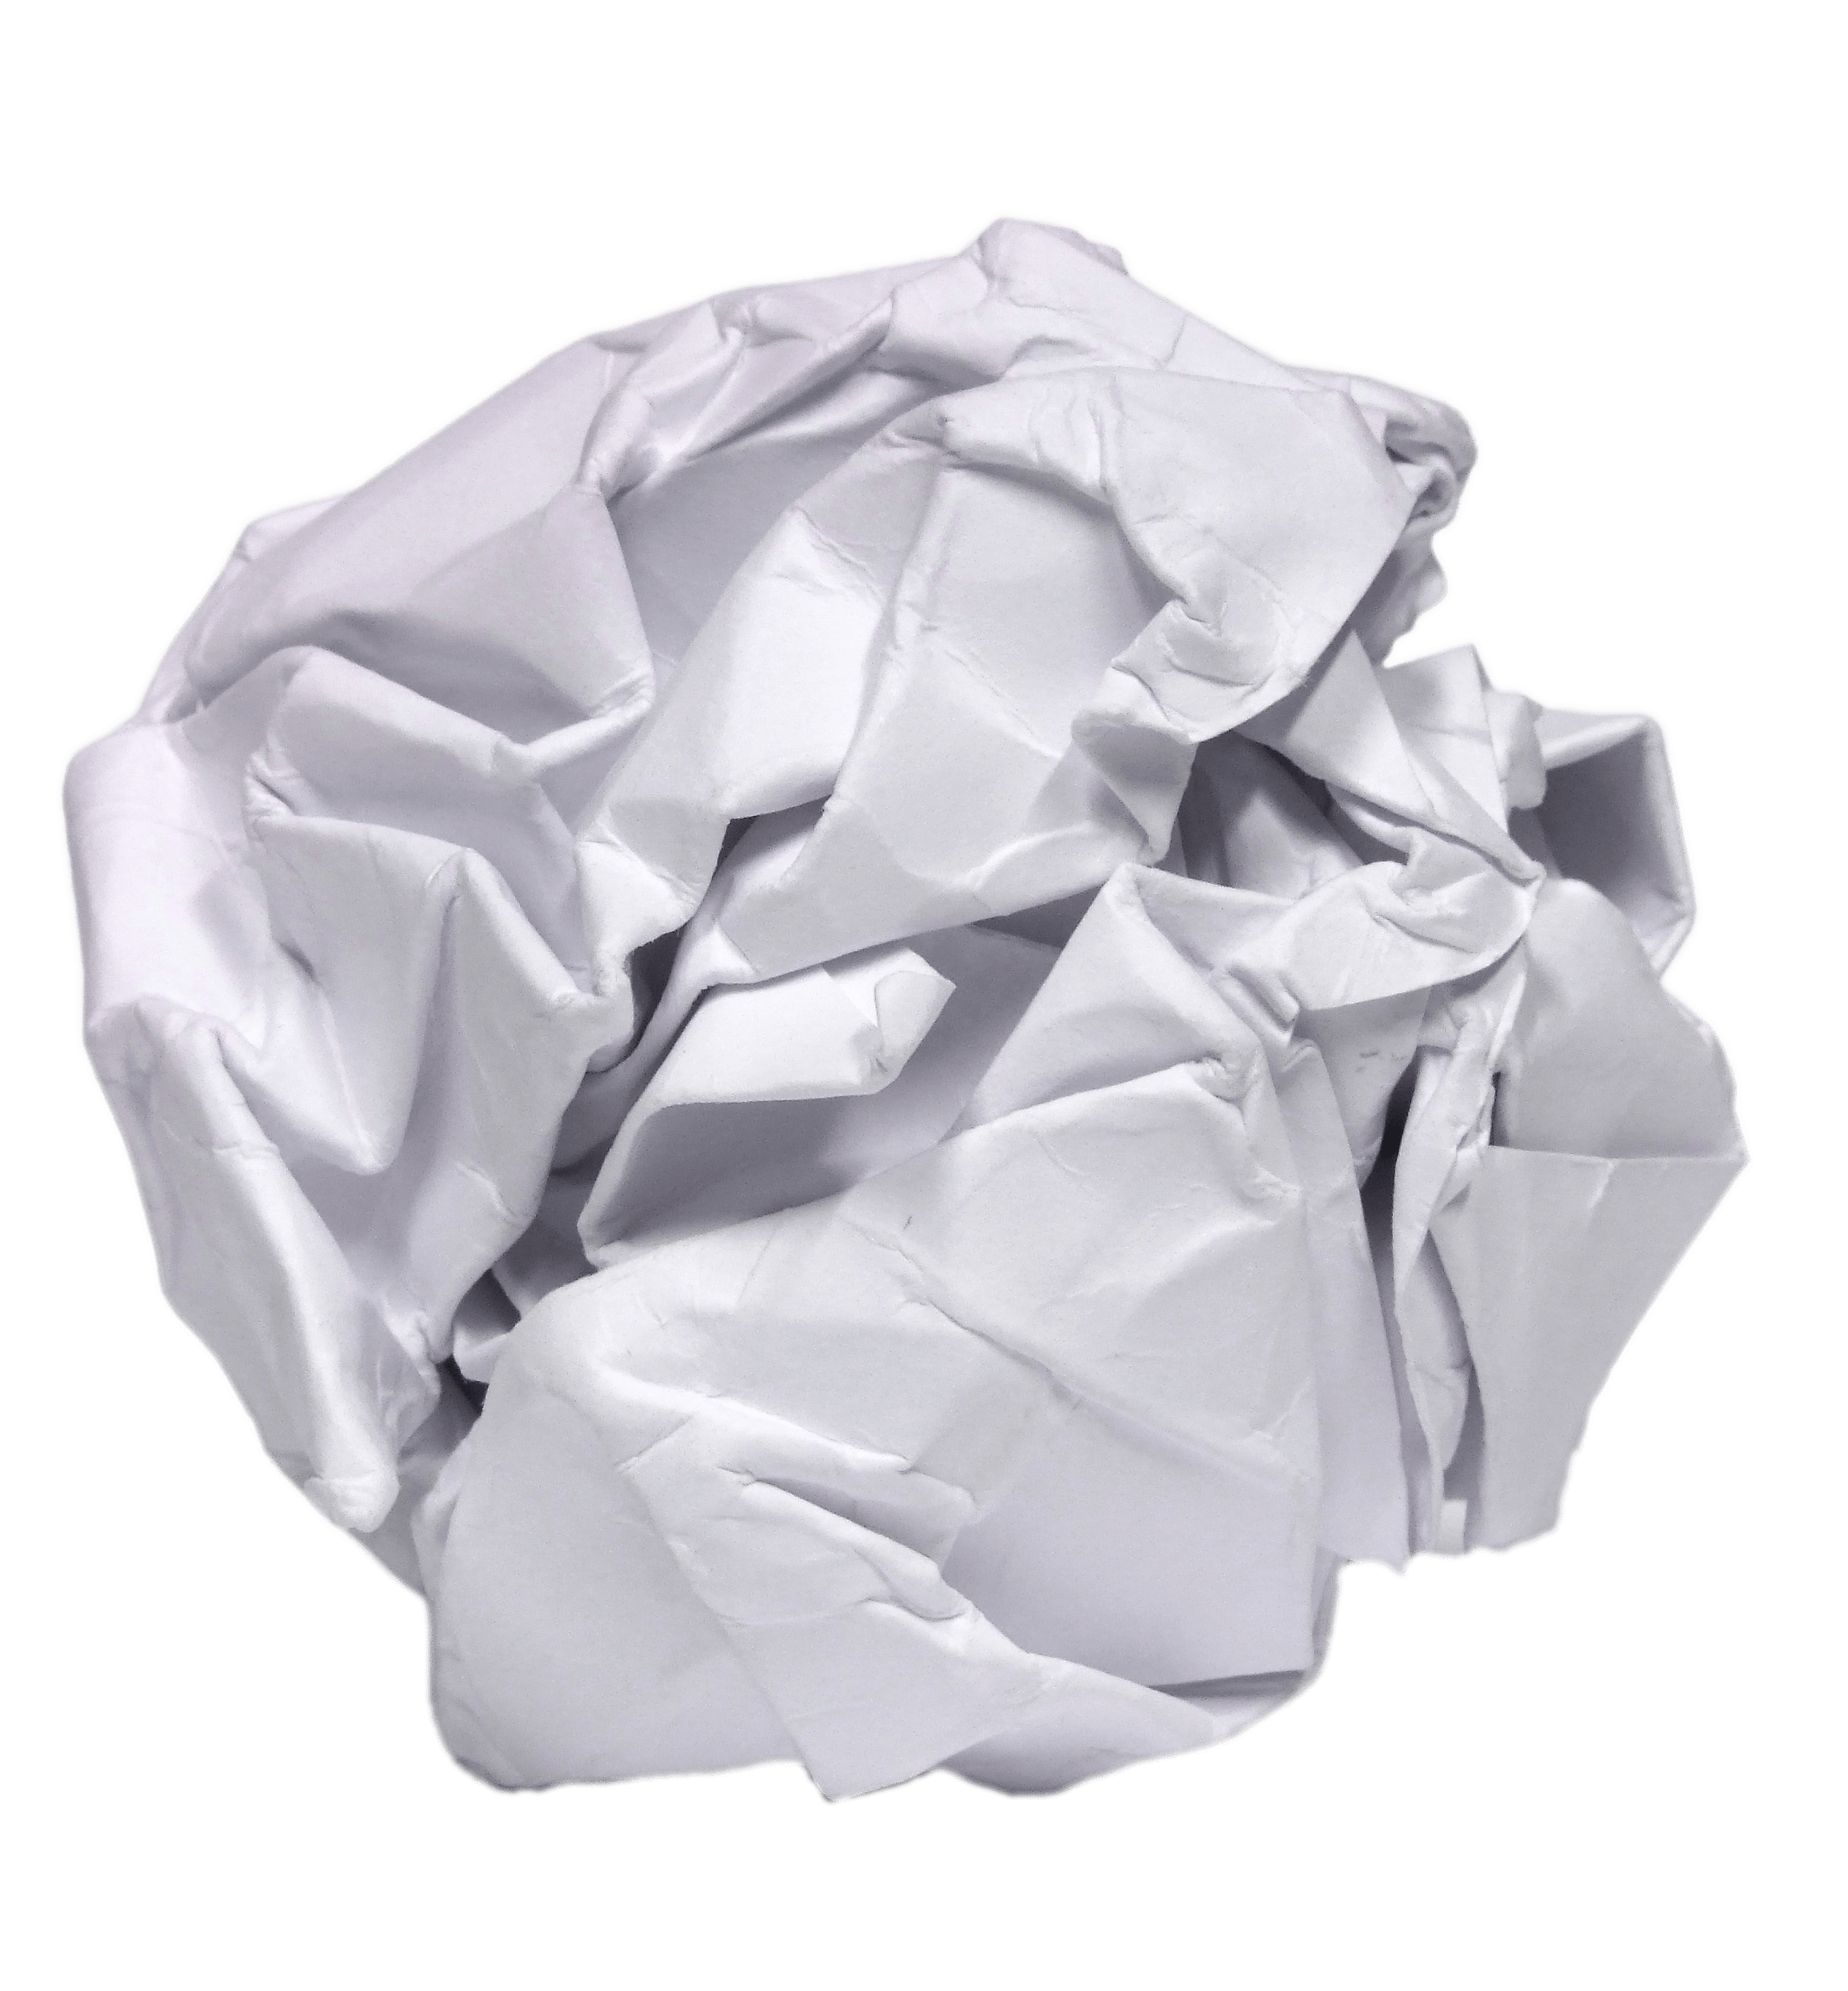 Crumpled Paper - Void Fill Solutions